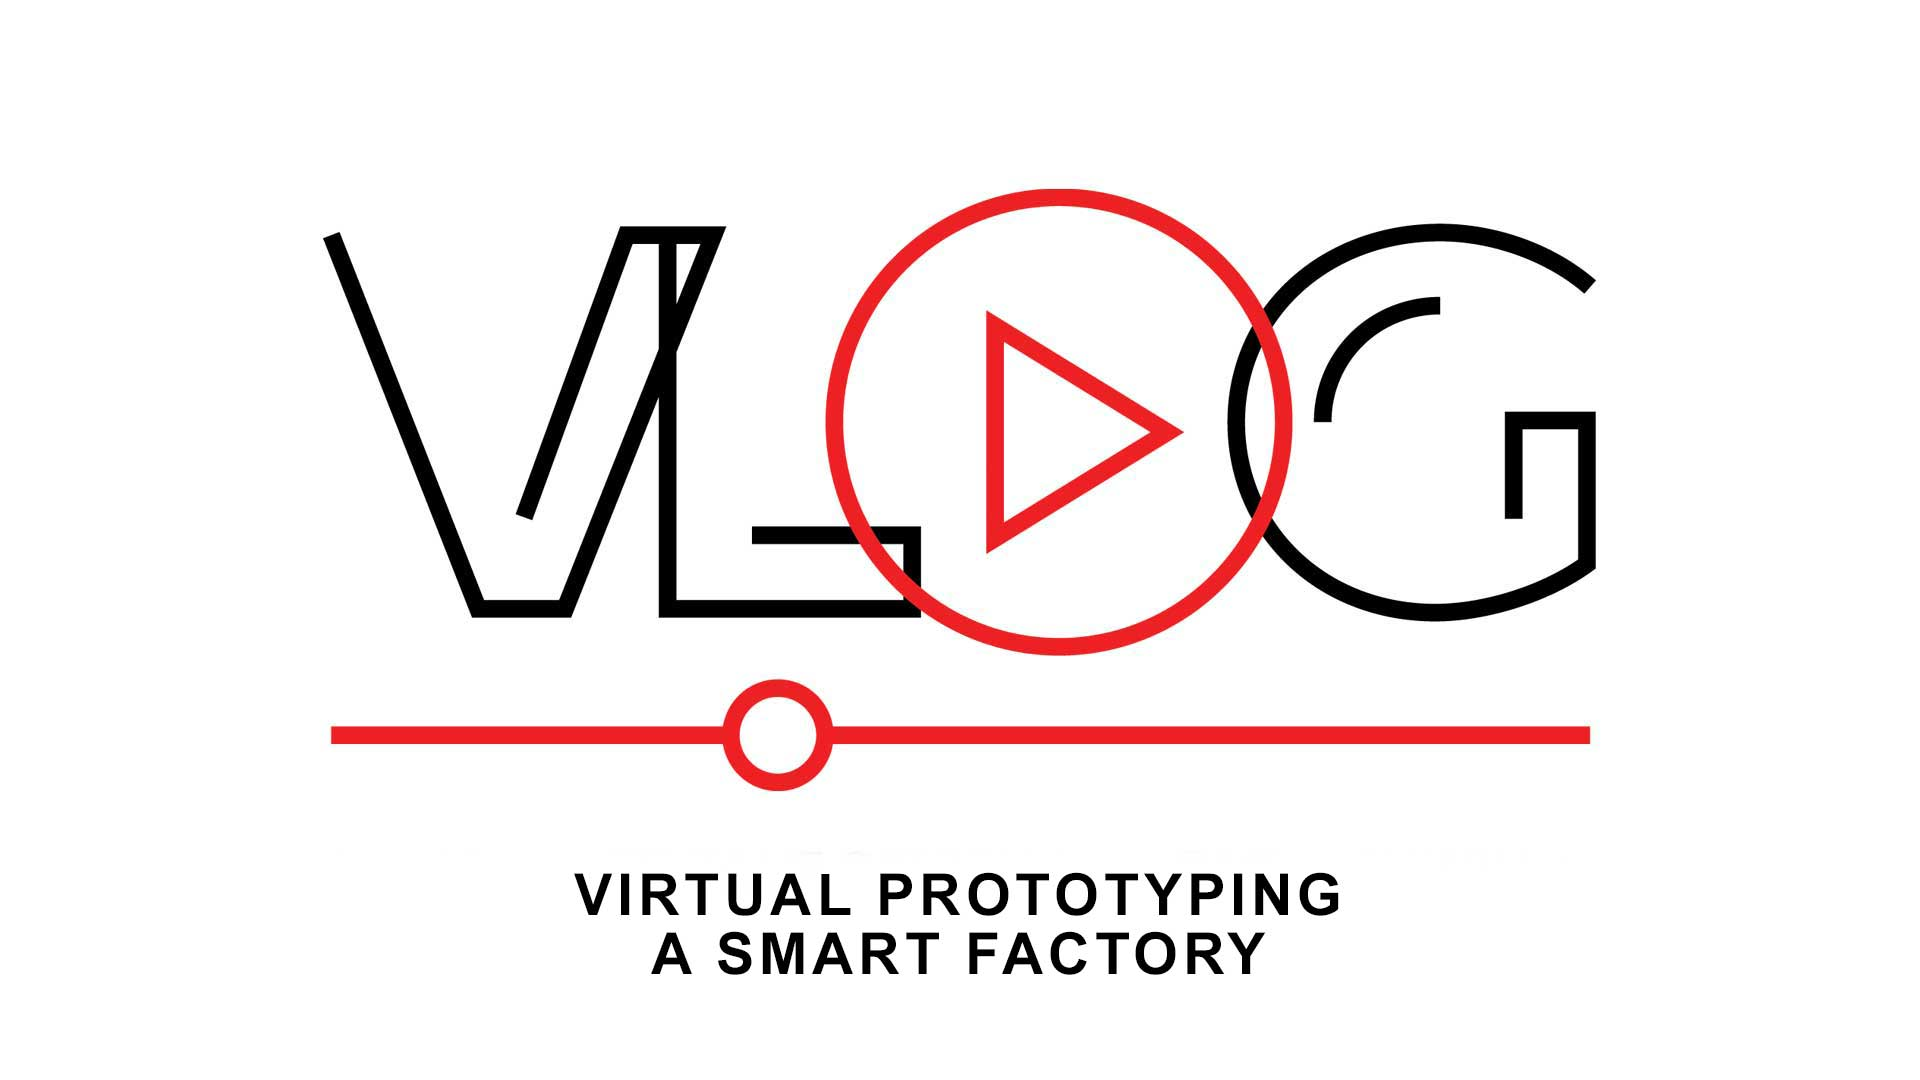 Virtual Prototyping a Smart Factory